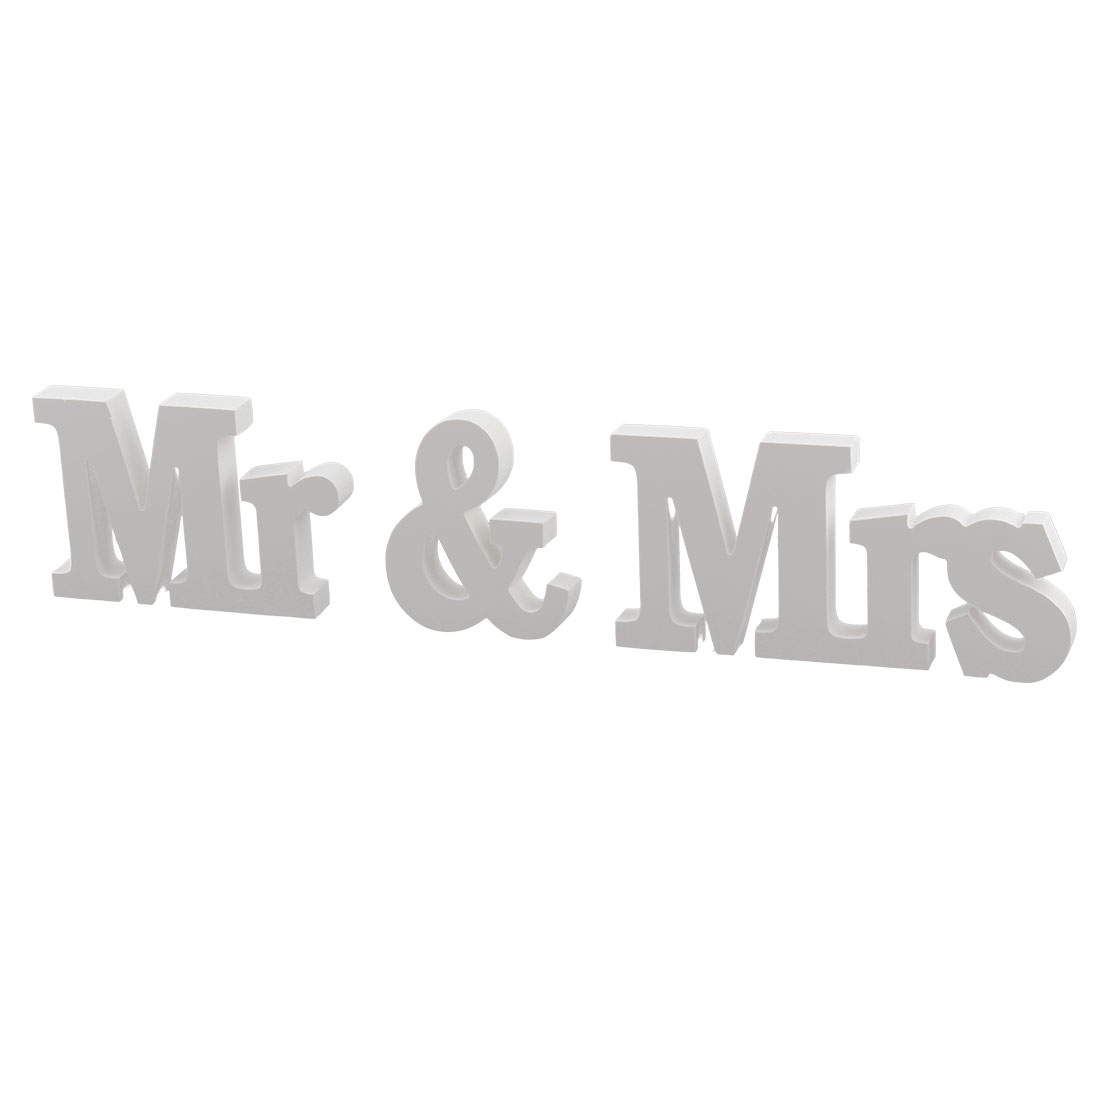 Wedding Decoration Plywood Generic Mr and Mrs Letters Free DIY Wall White 3 in 1